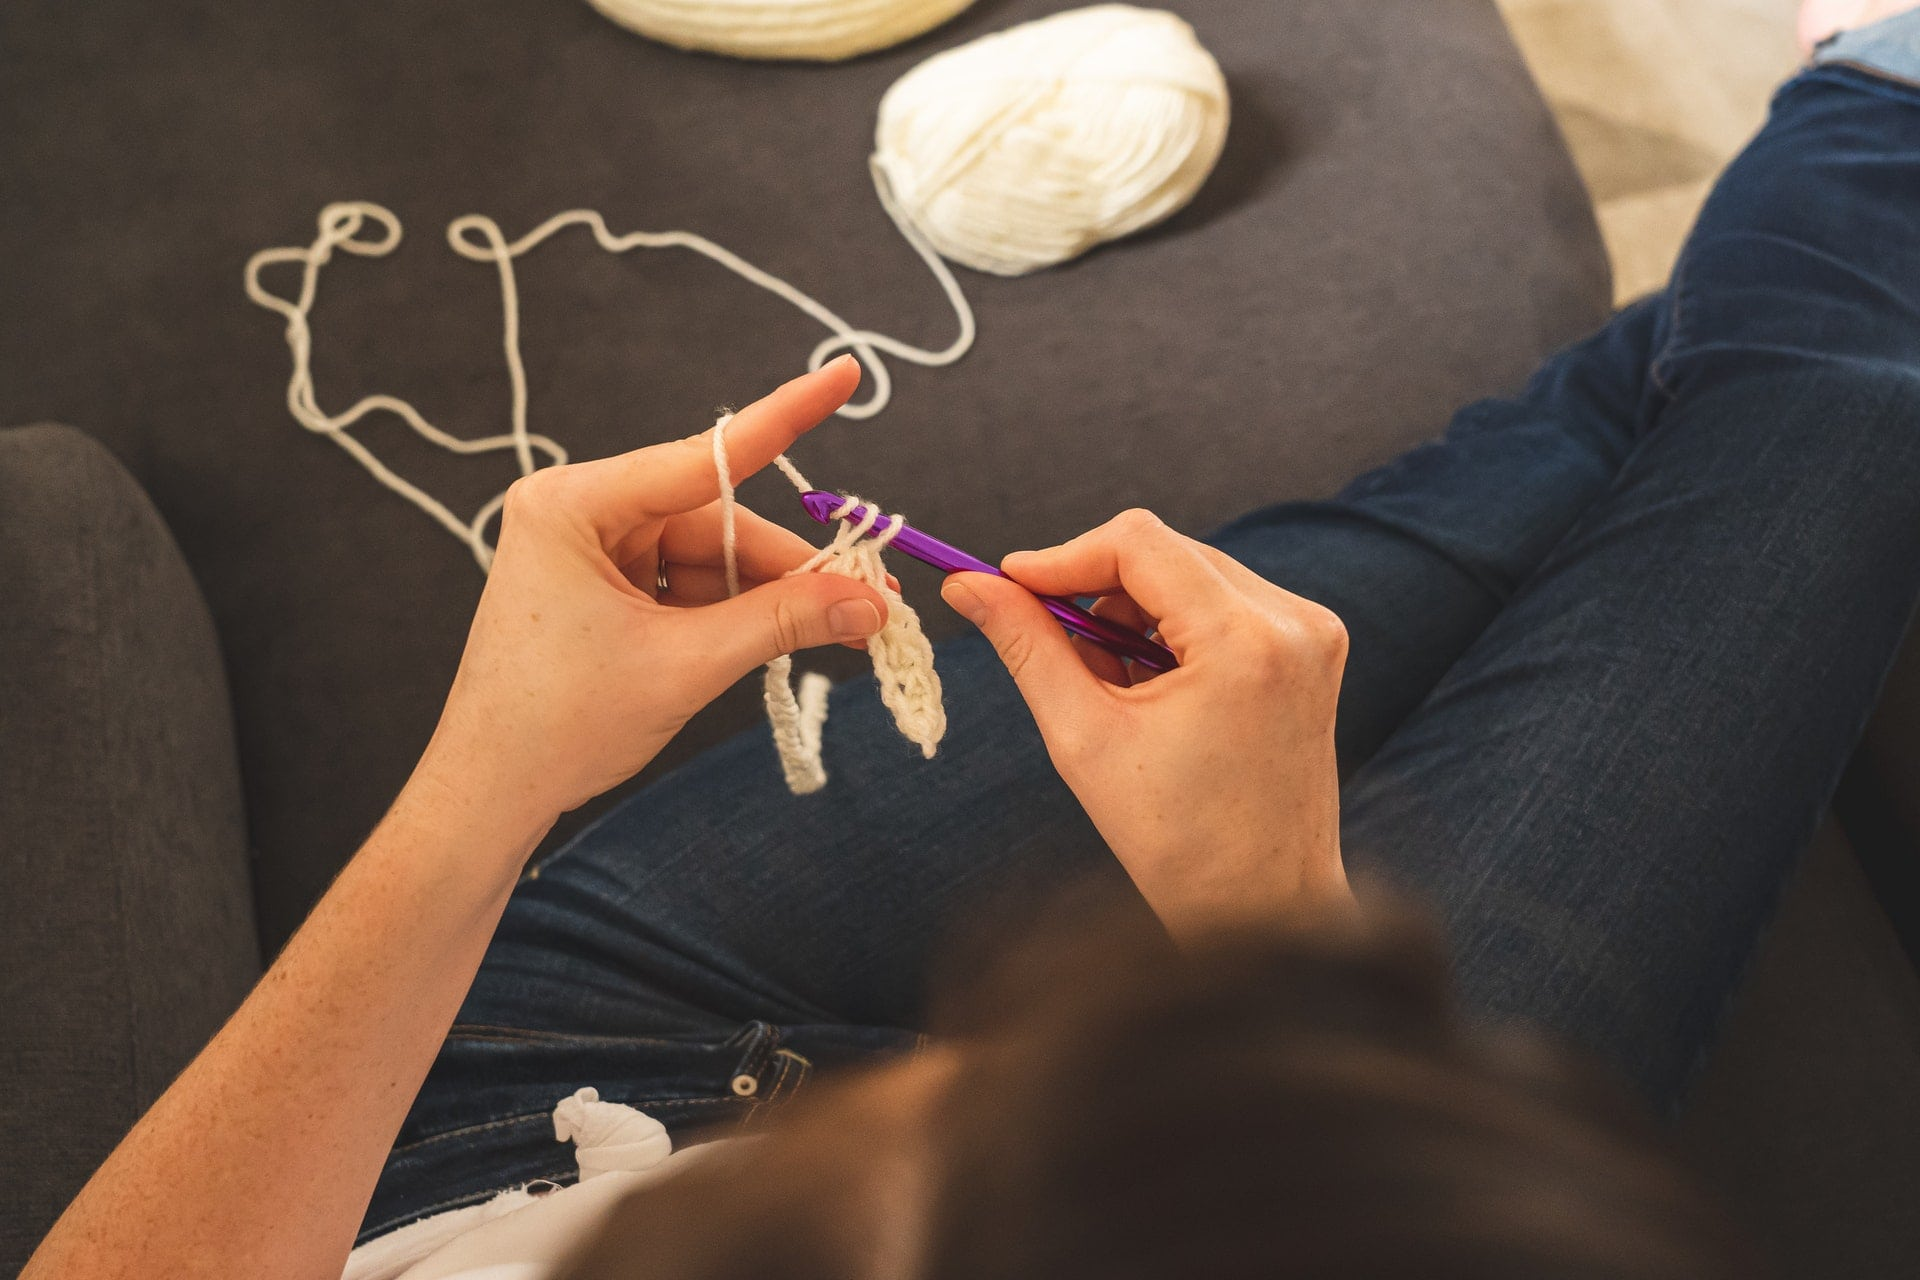 What is a slip stitch in crochet?